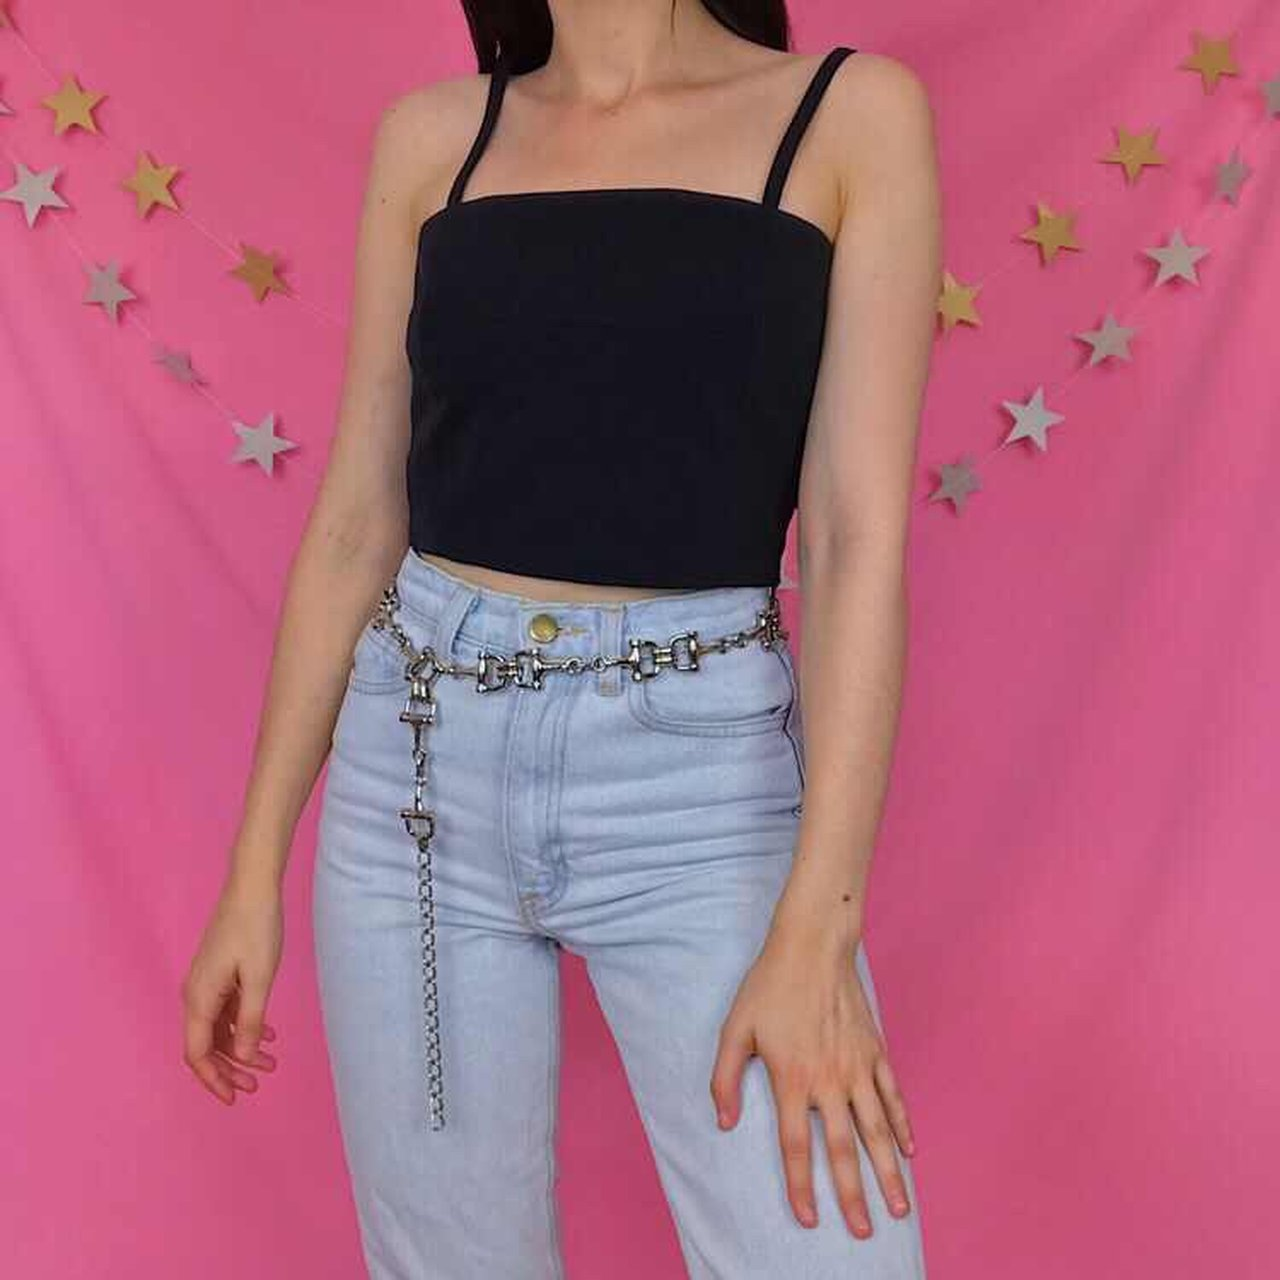 1ddd3869808a68 ⭐ Awesome Y2K vintage black straight neck crop top with a A - Depop